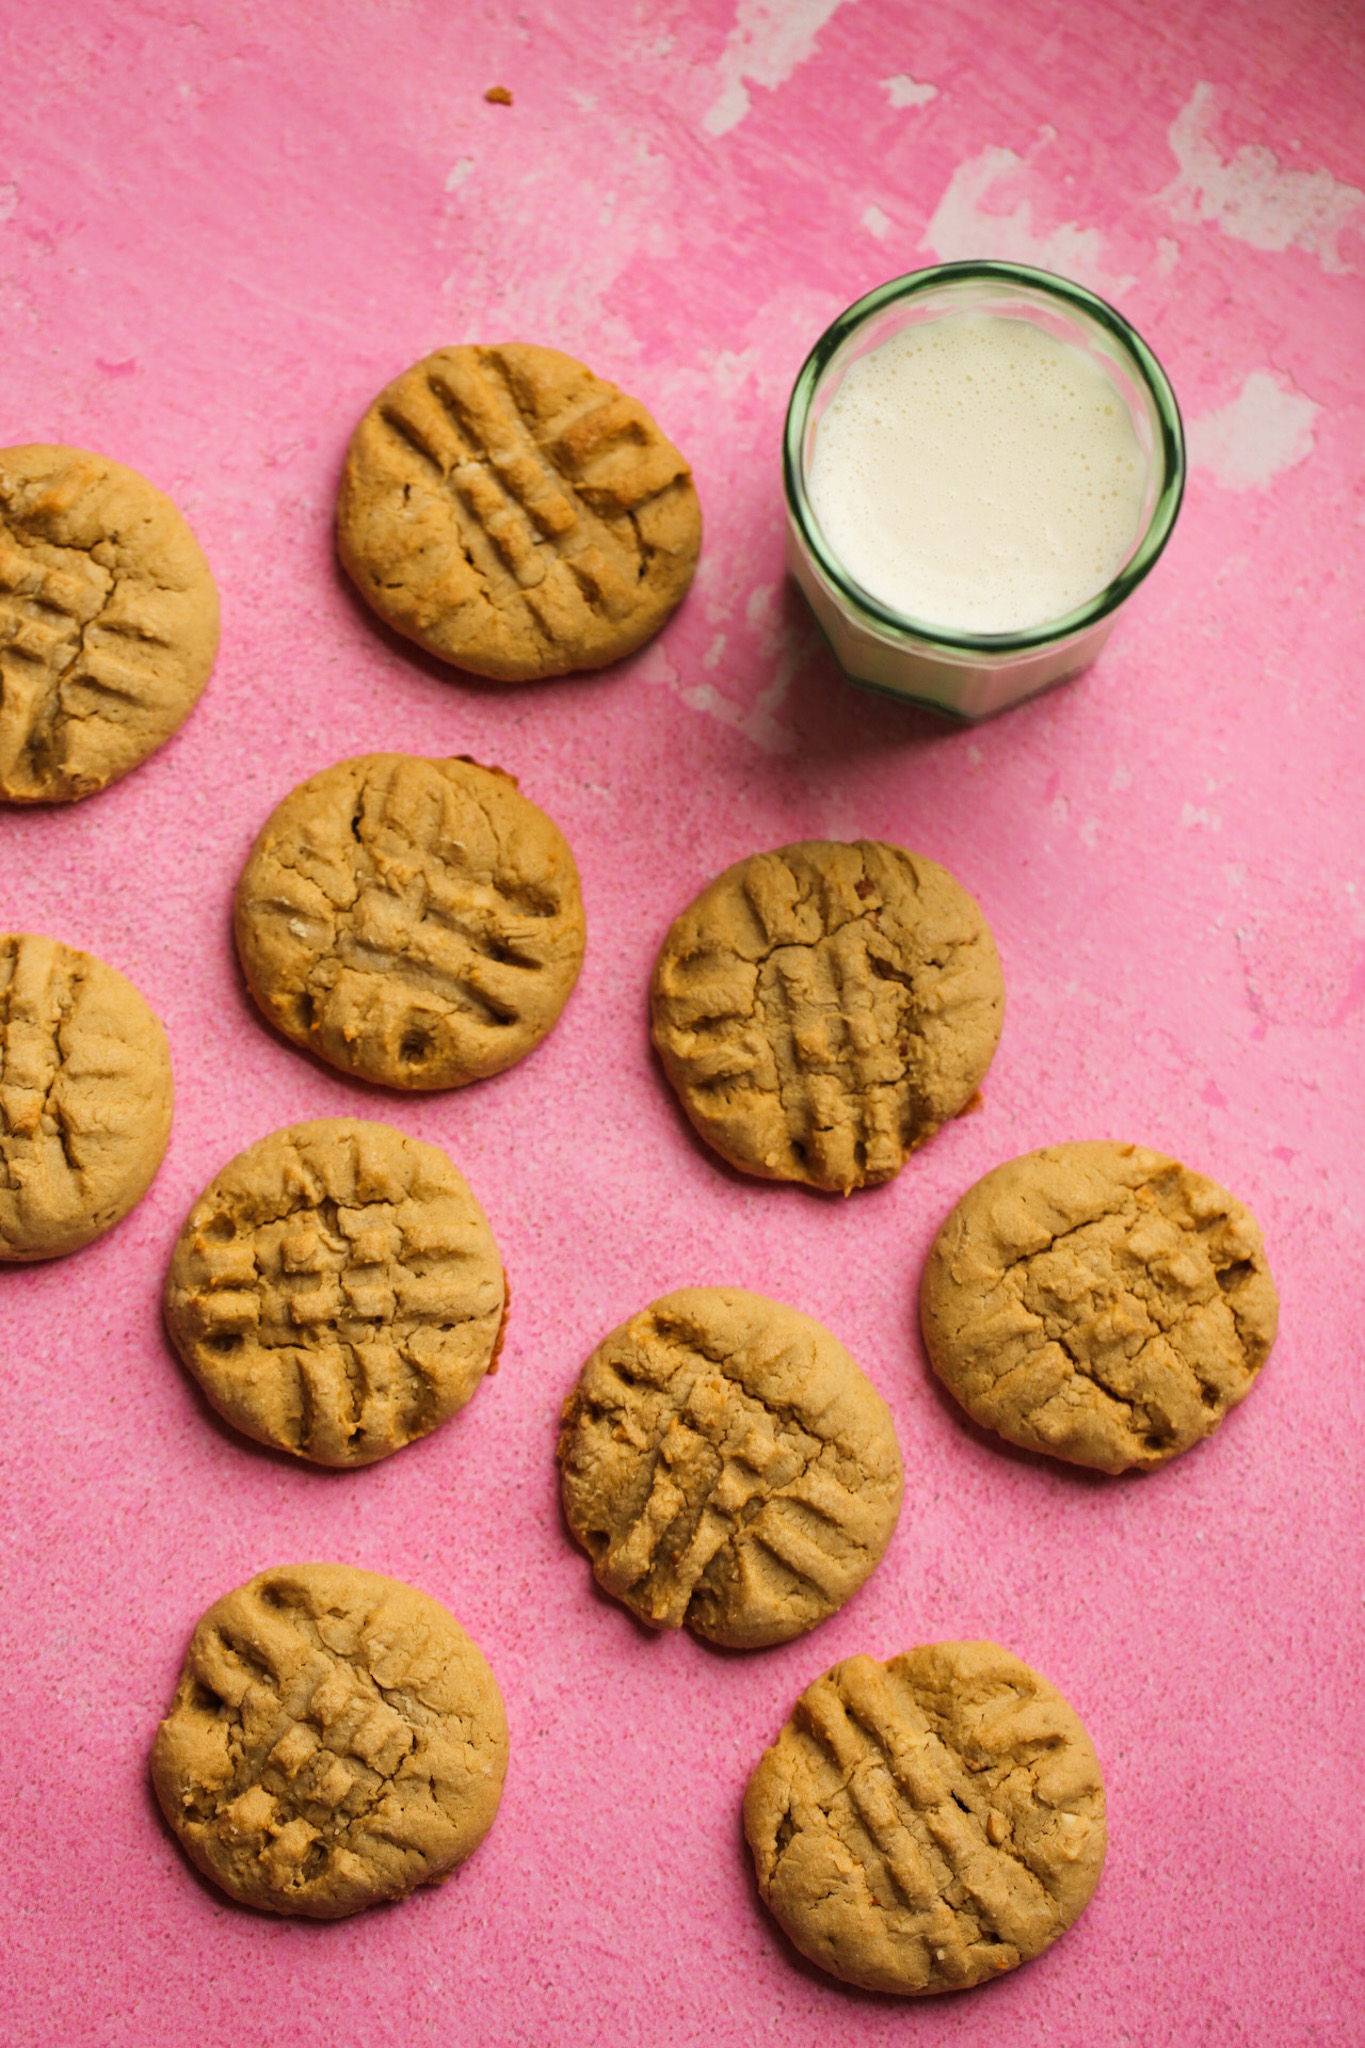 maple peanut butter cookies with a glass of soy milk on a pink surface